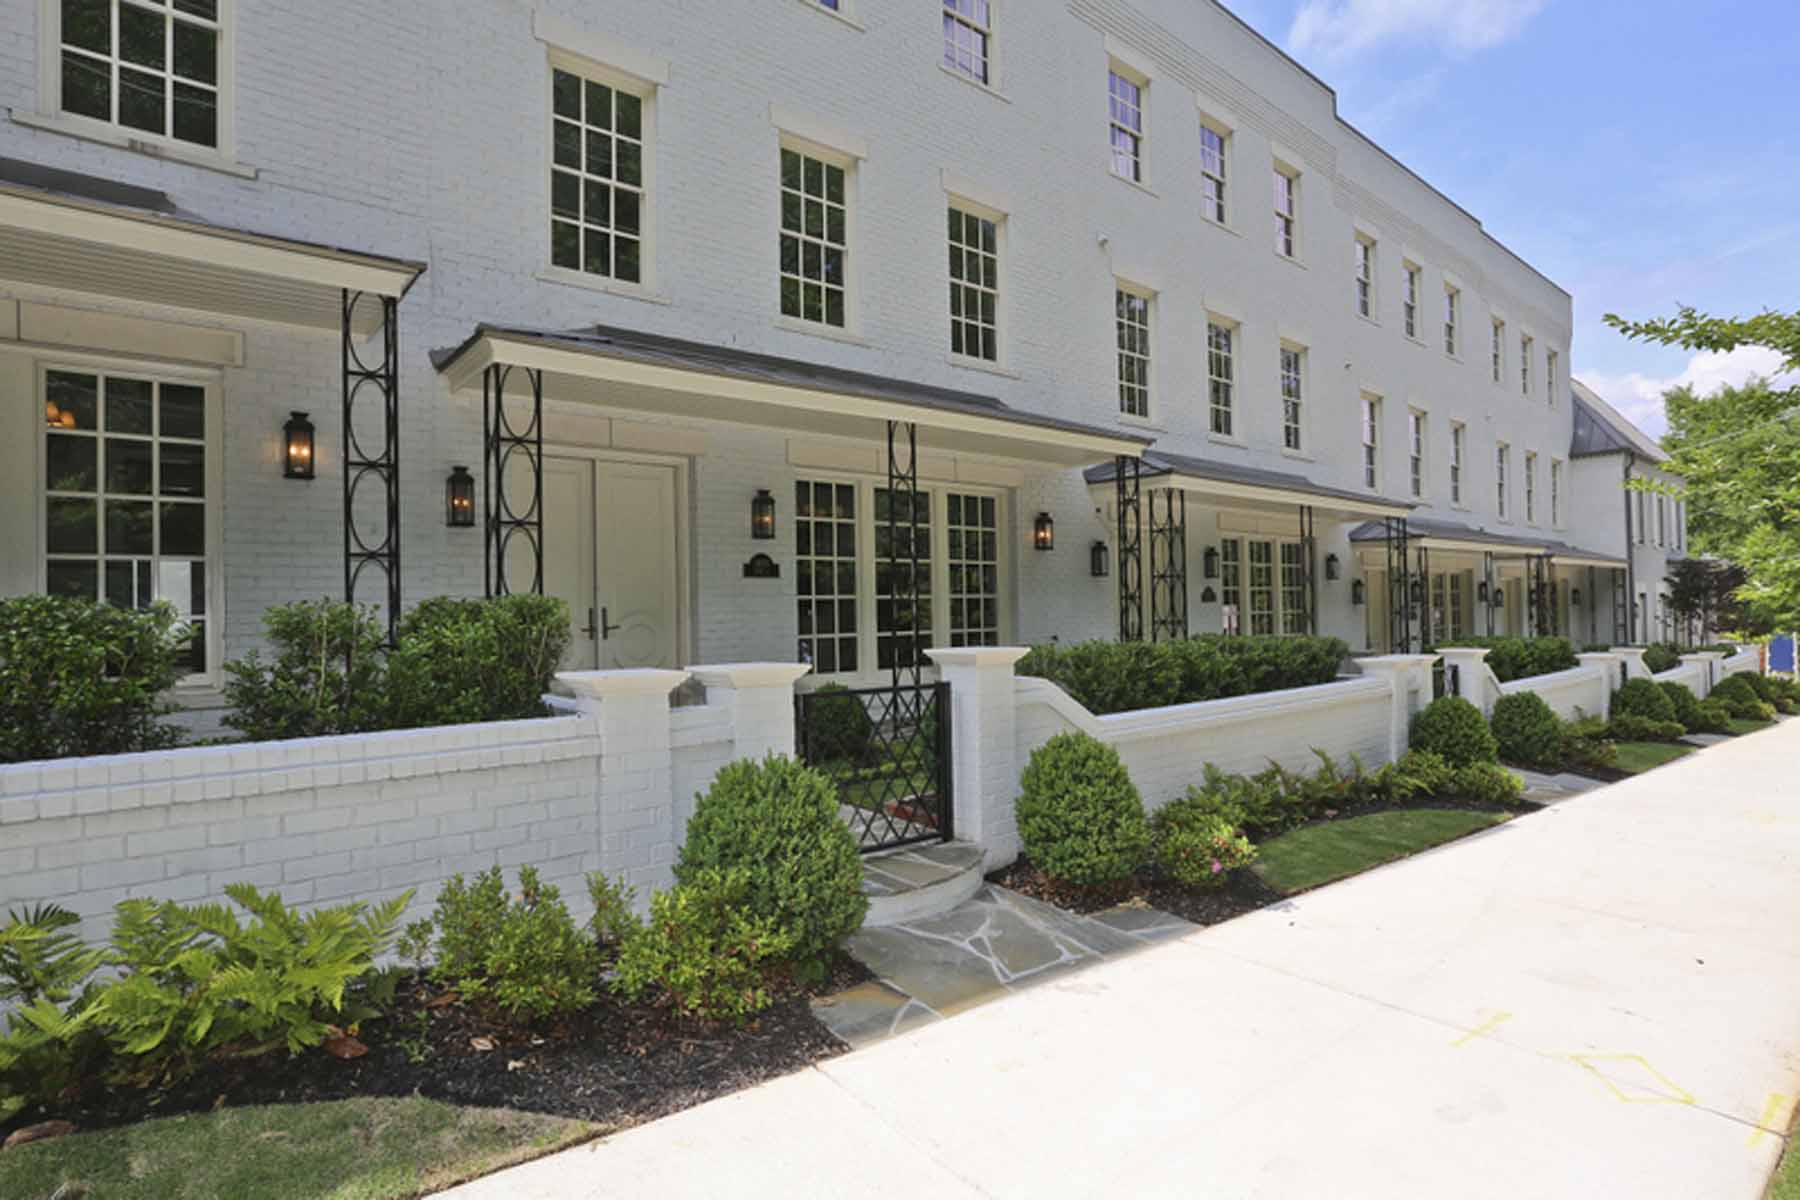 Таунхаус для того Продажа на BRAND NEW TOWNHOME BY MONTE HEWETT HOMES. 1400 Piedmont Avenue NE No. 2 Atlanta, Джорджия, 30309 Соединенные Штаты